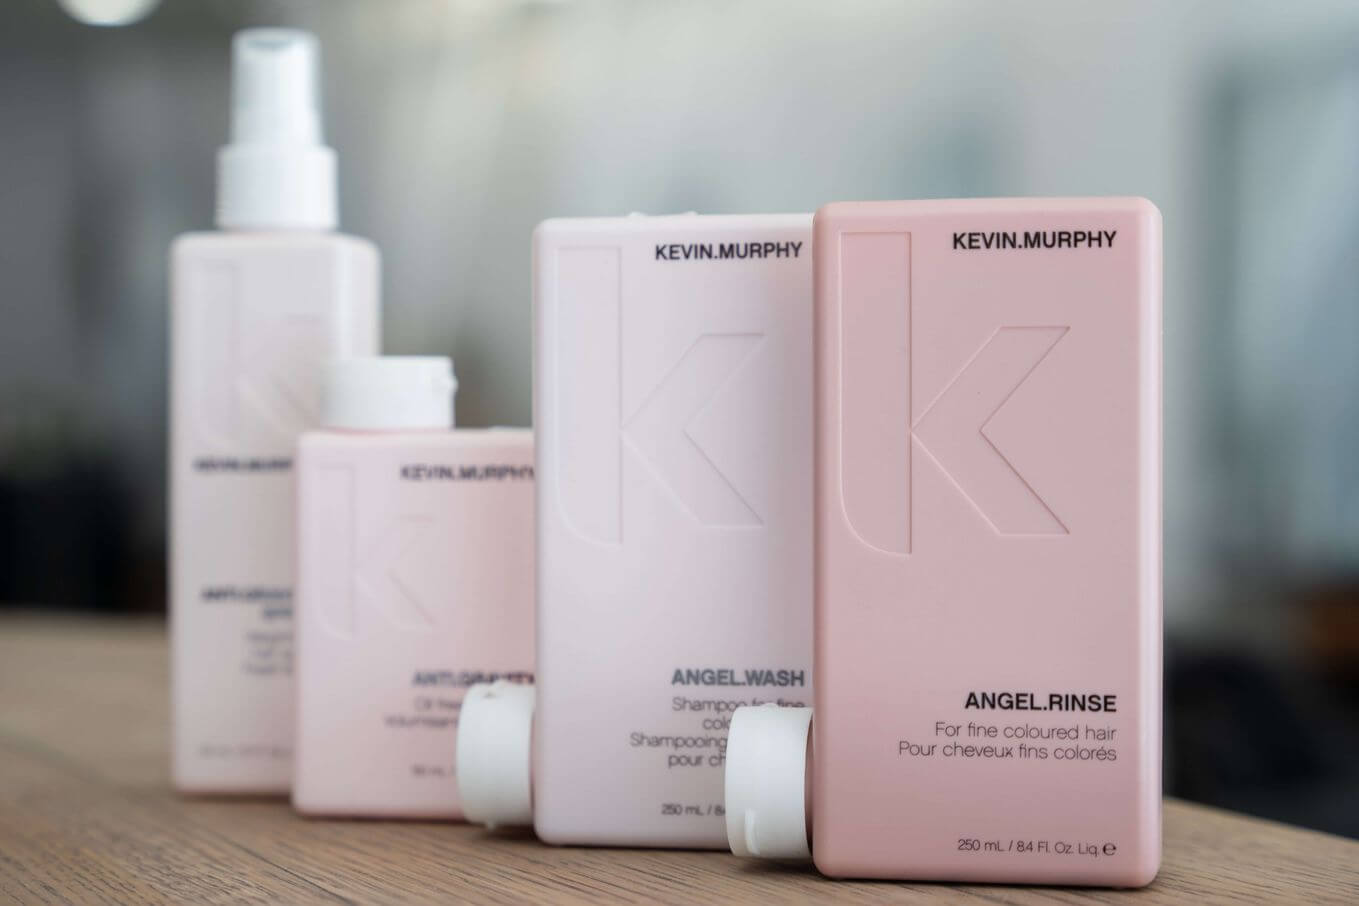 Bottles of Kevin Murphy shampoo and haircare [Unioncrate]